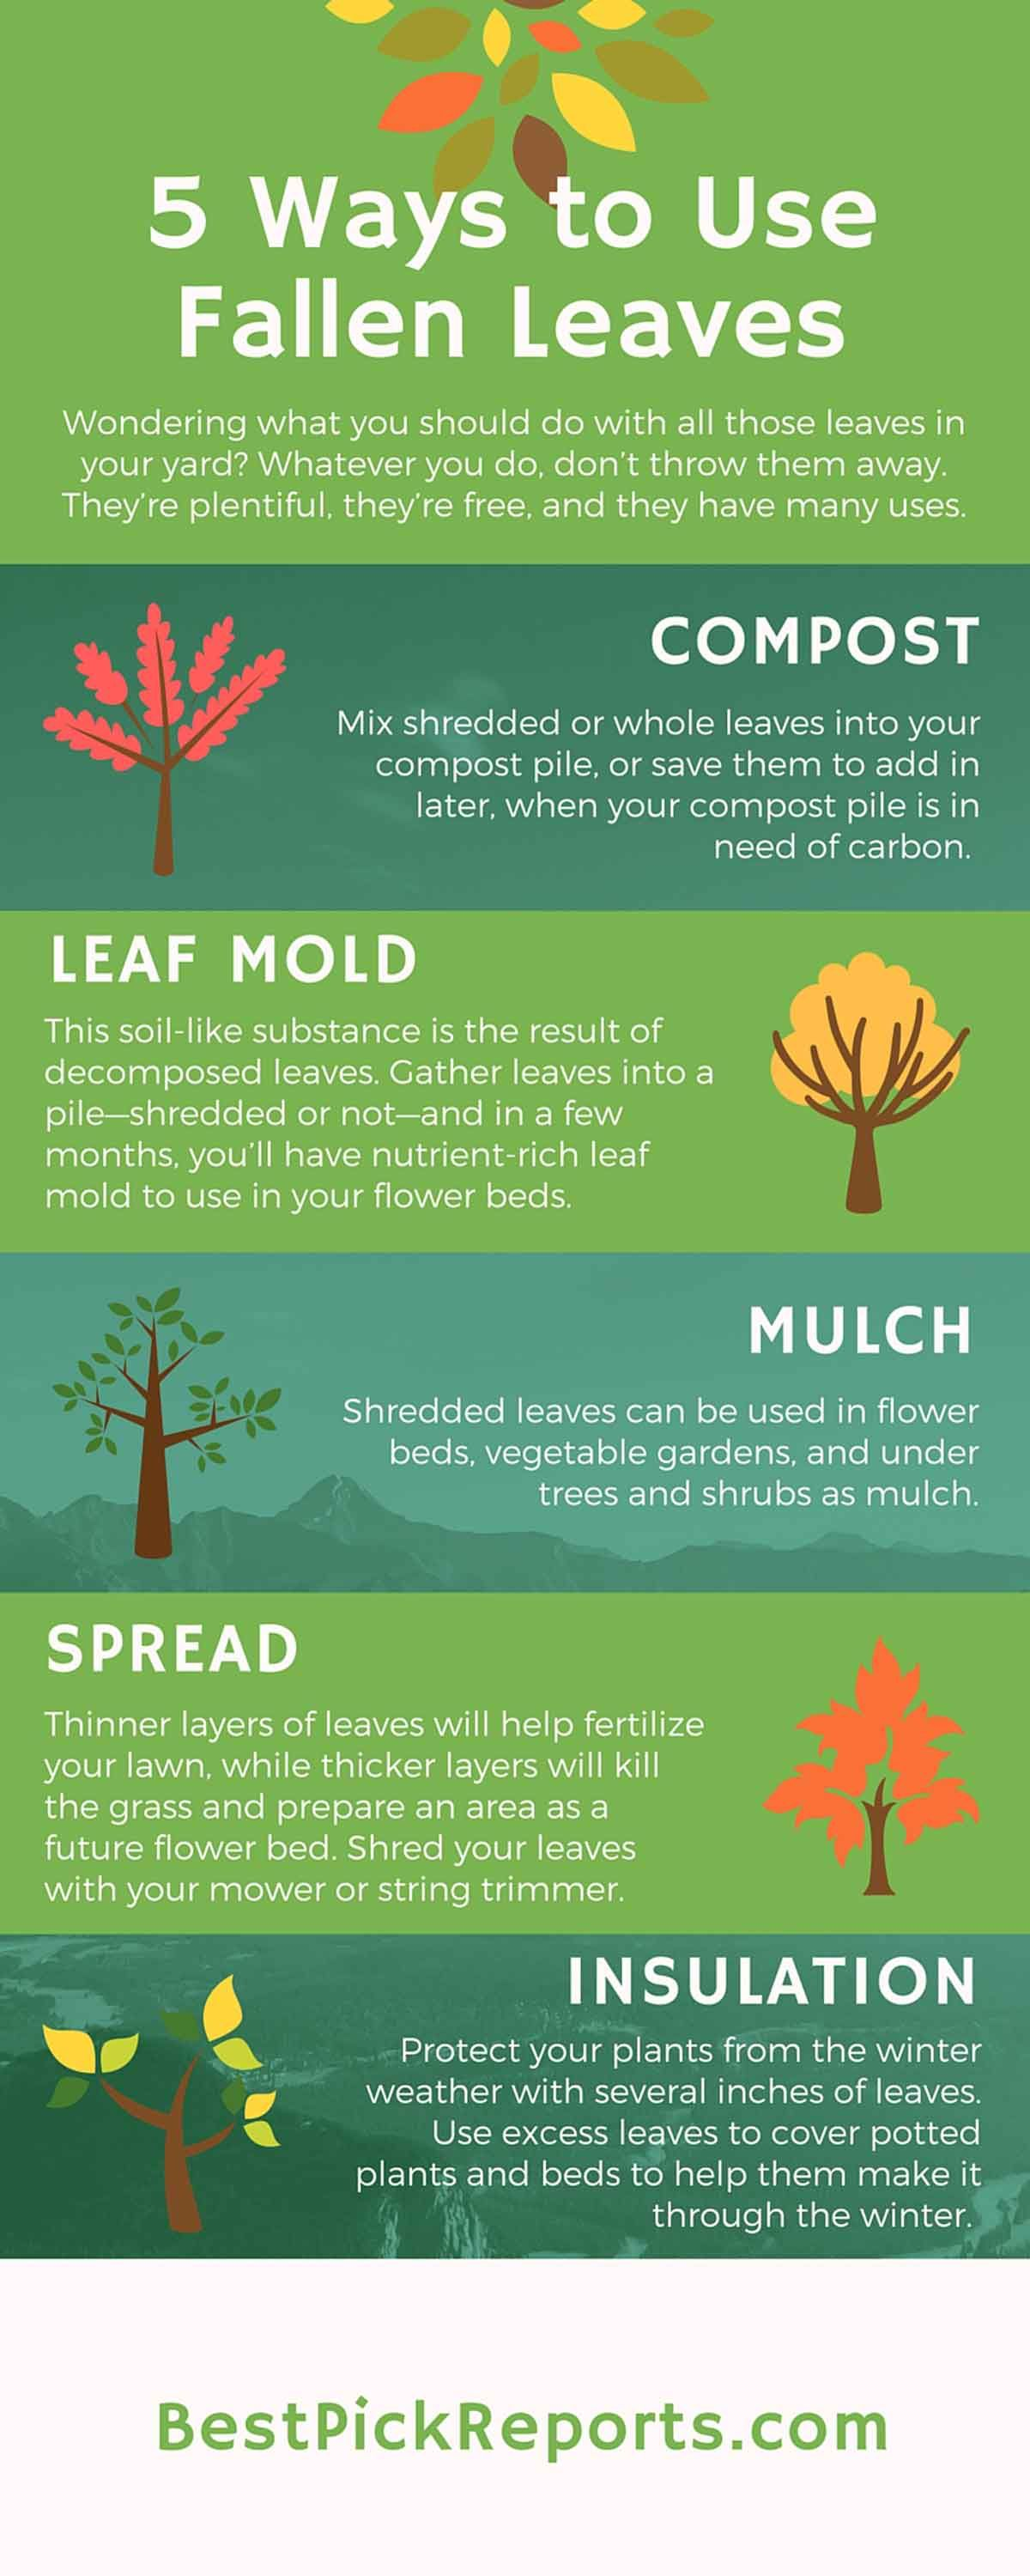 Ways to Use Fallen Leaves